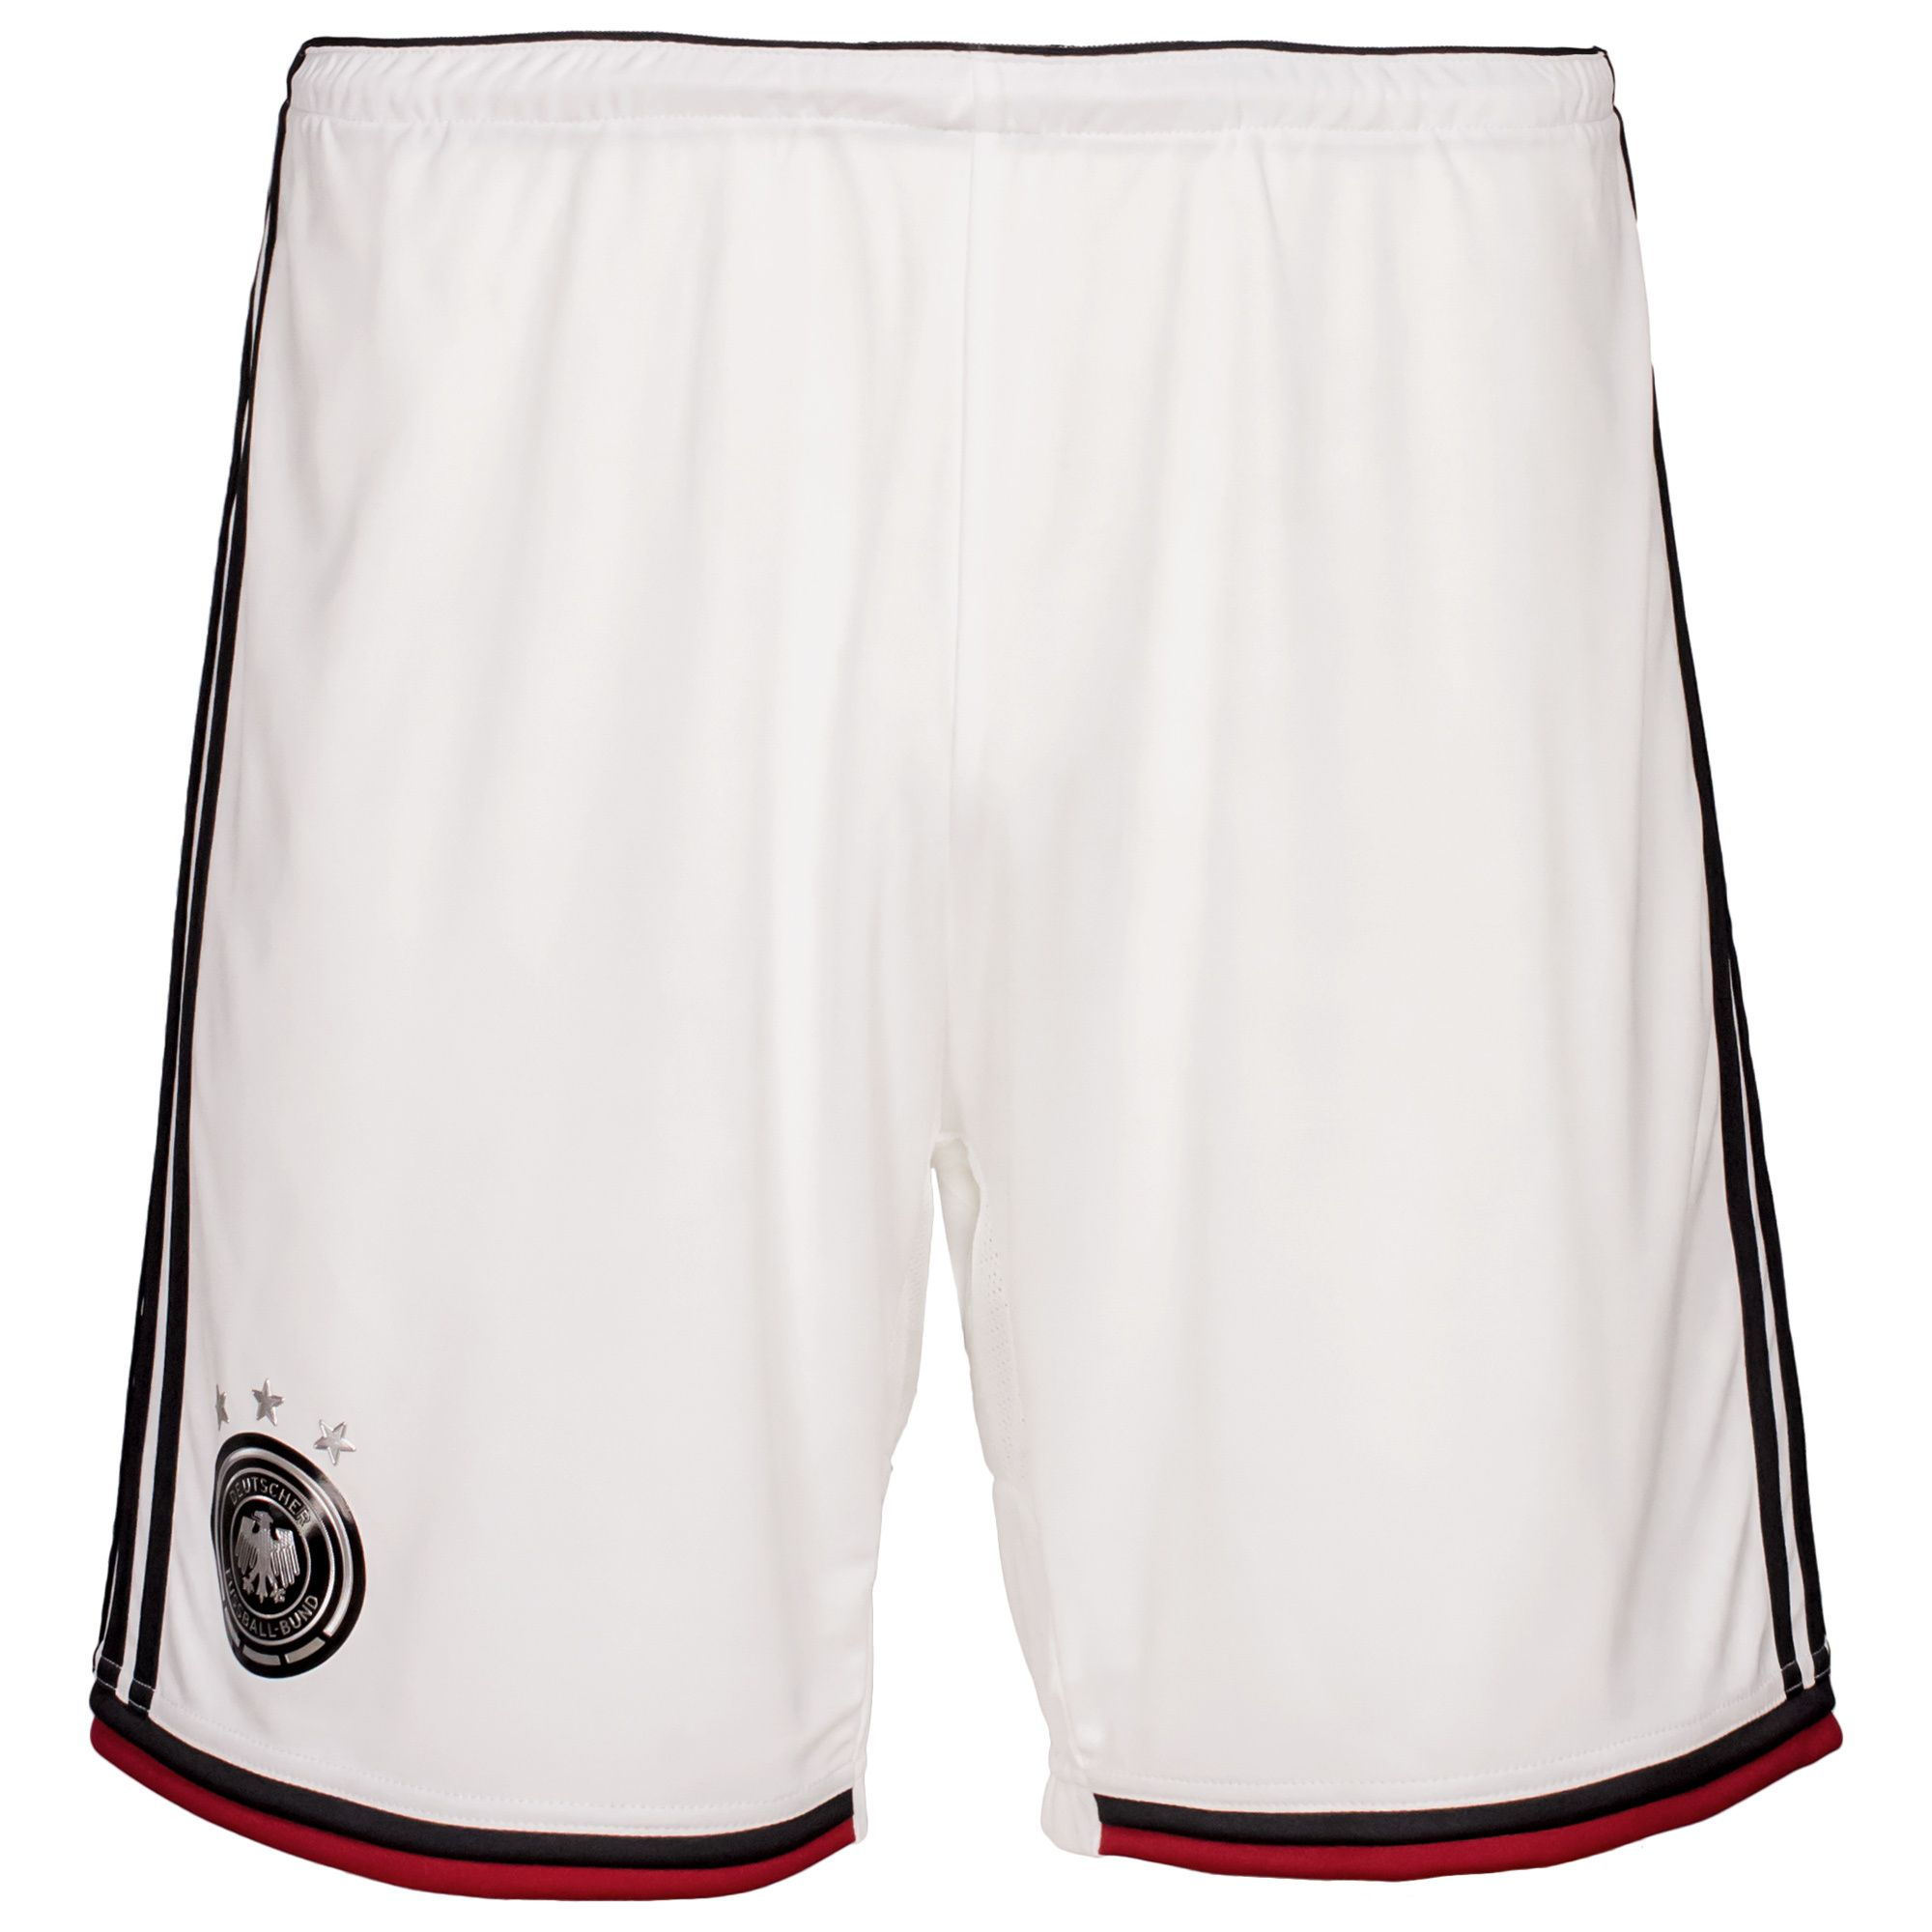 ADIDAS PERFORMANCE adidas Performance DFB Short Home WM 2014 Herren